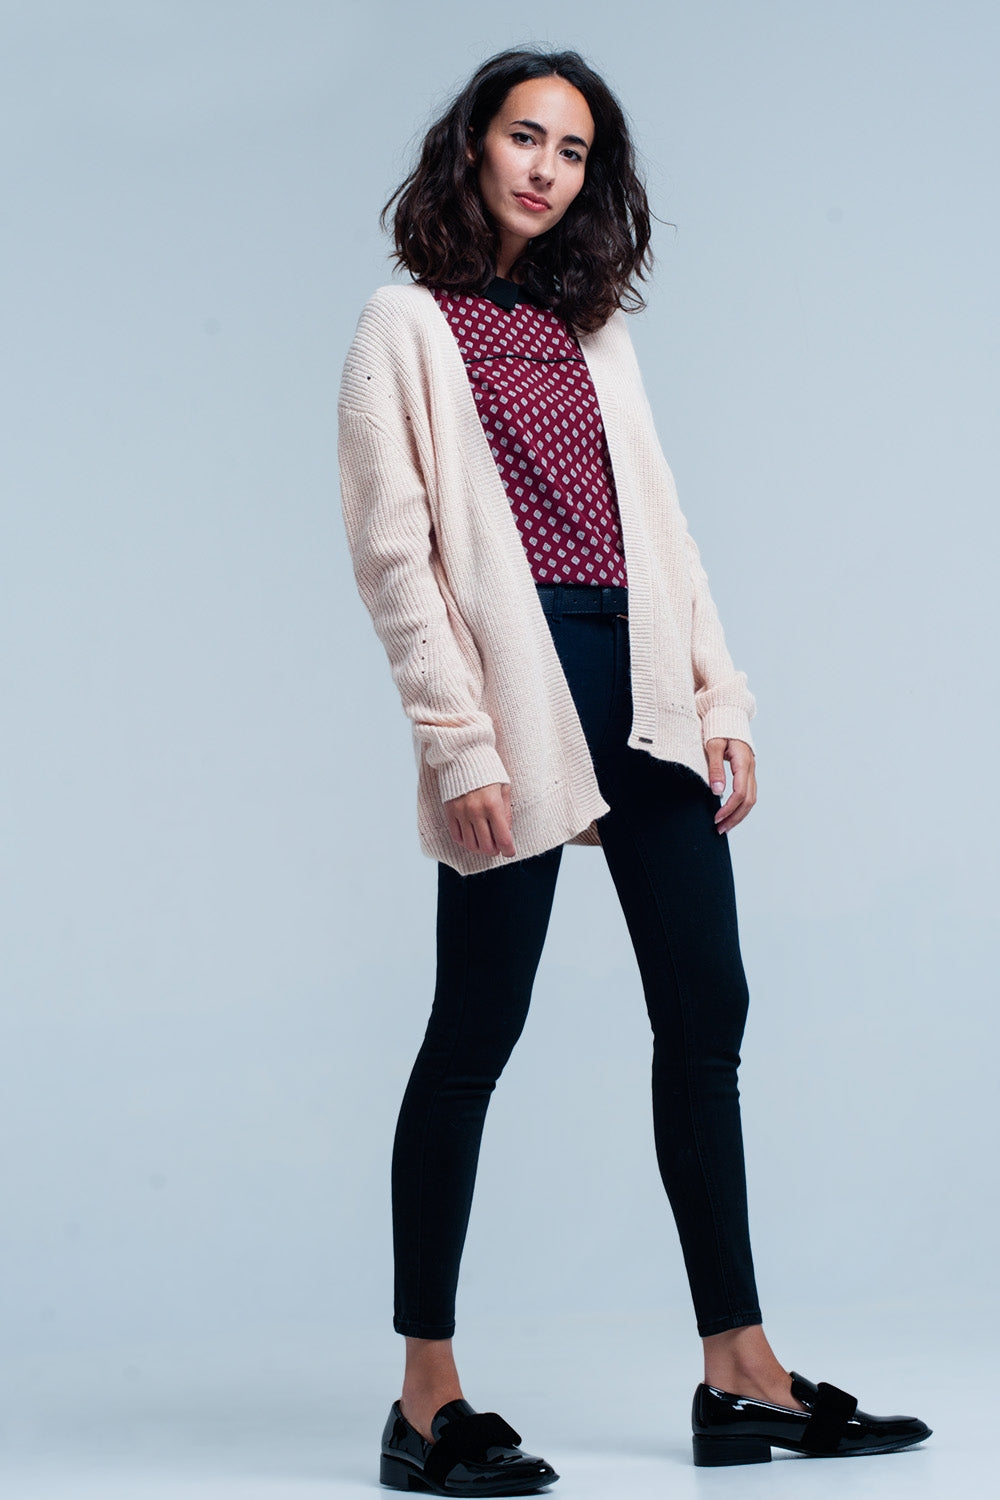 Pink Angora Cardigan With Long Sleeves-Women - Apparel - Sweaters - Cardigans-Product Details Old pink long sleeve jacket in high quality angora. In the shoulders are larger holes that make the cardigan somewhat apart.-Keyomi-Sook